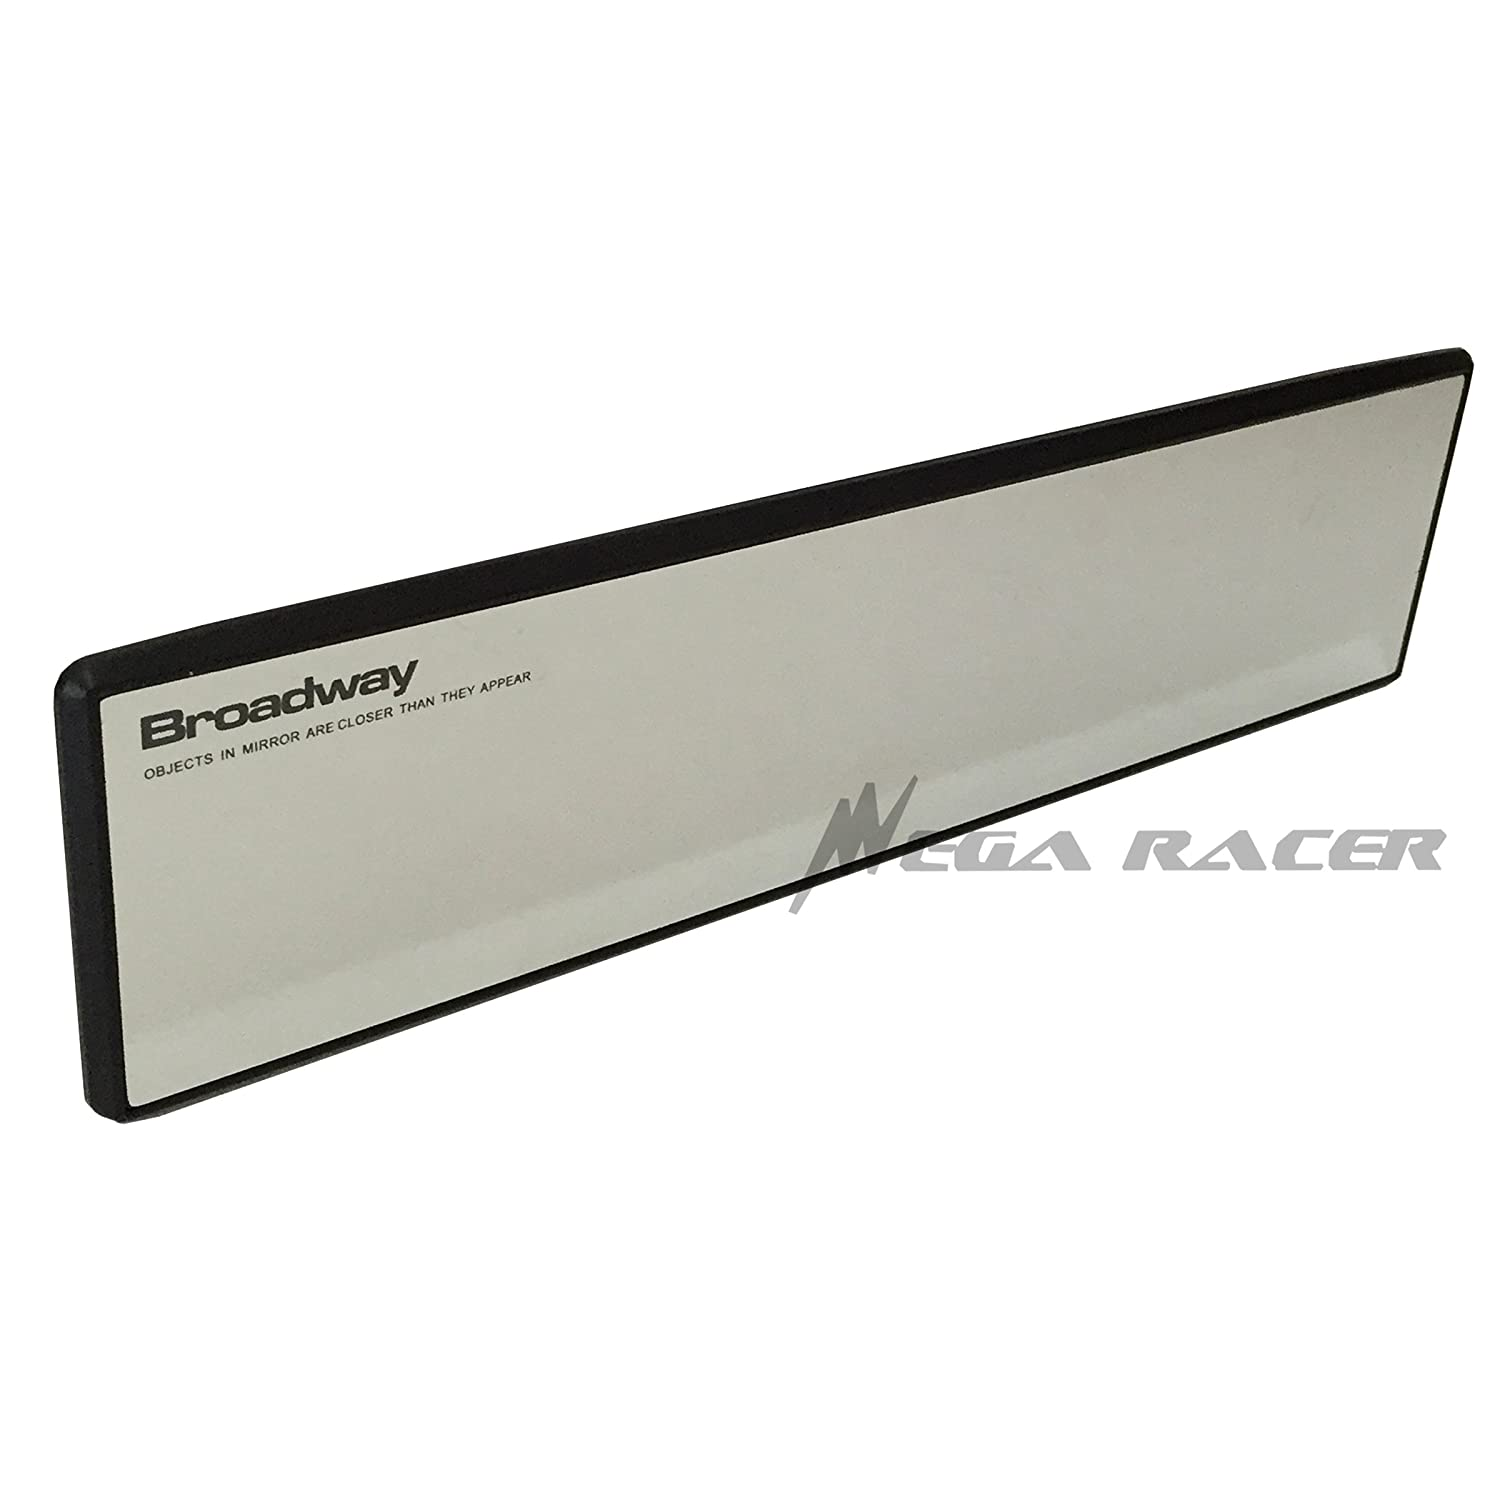 BROADWAY CHROME 300 MM Flat Face Anti-Glare BW746 Napolex Universal Clip-On Wide Rear View Mirror Car Truck US Seller Mega Racer